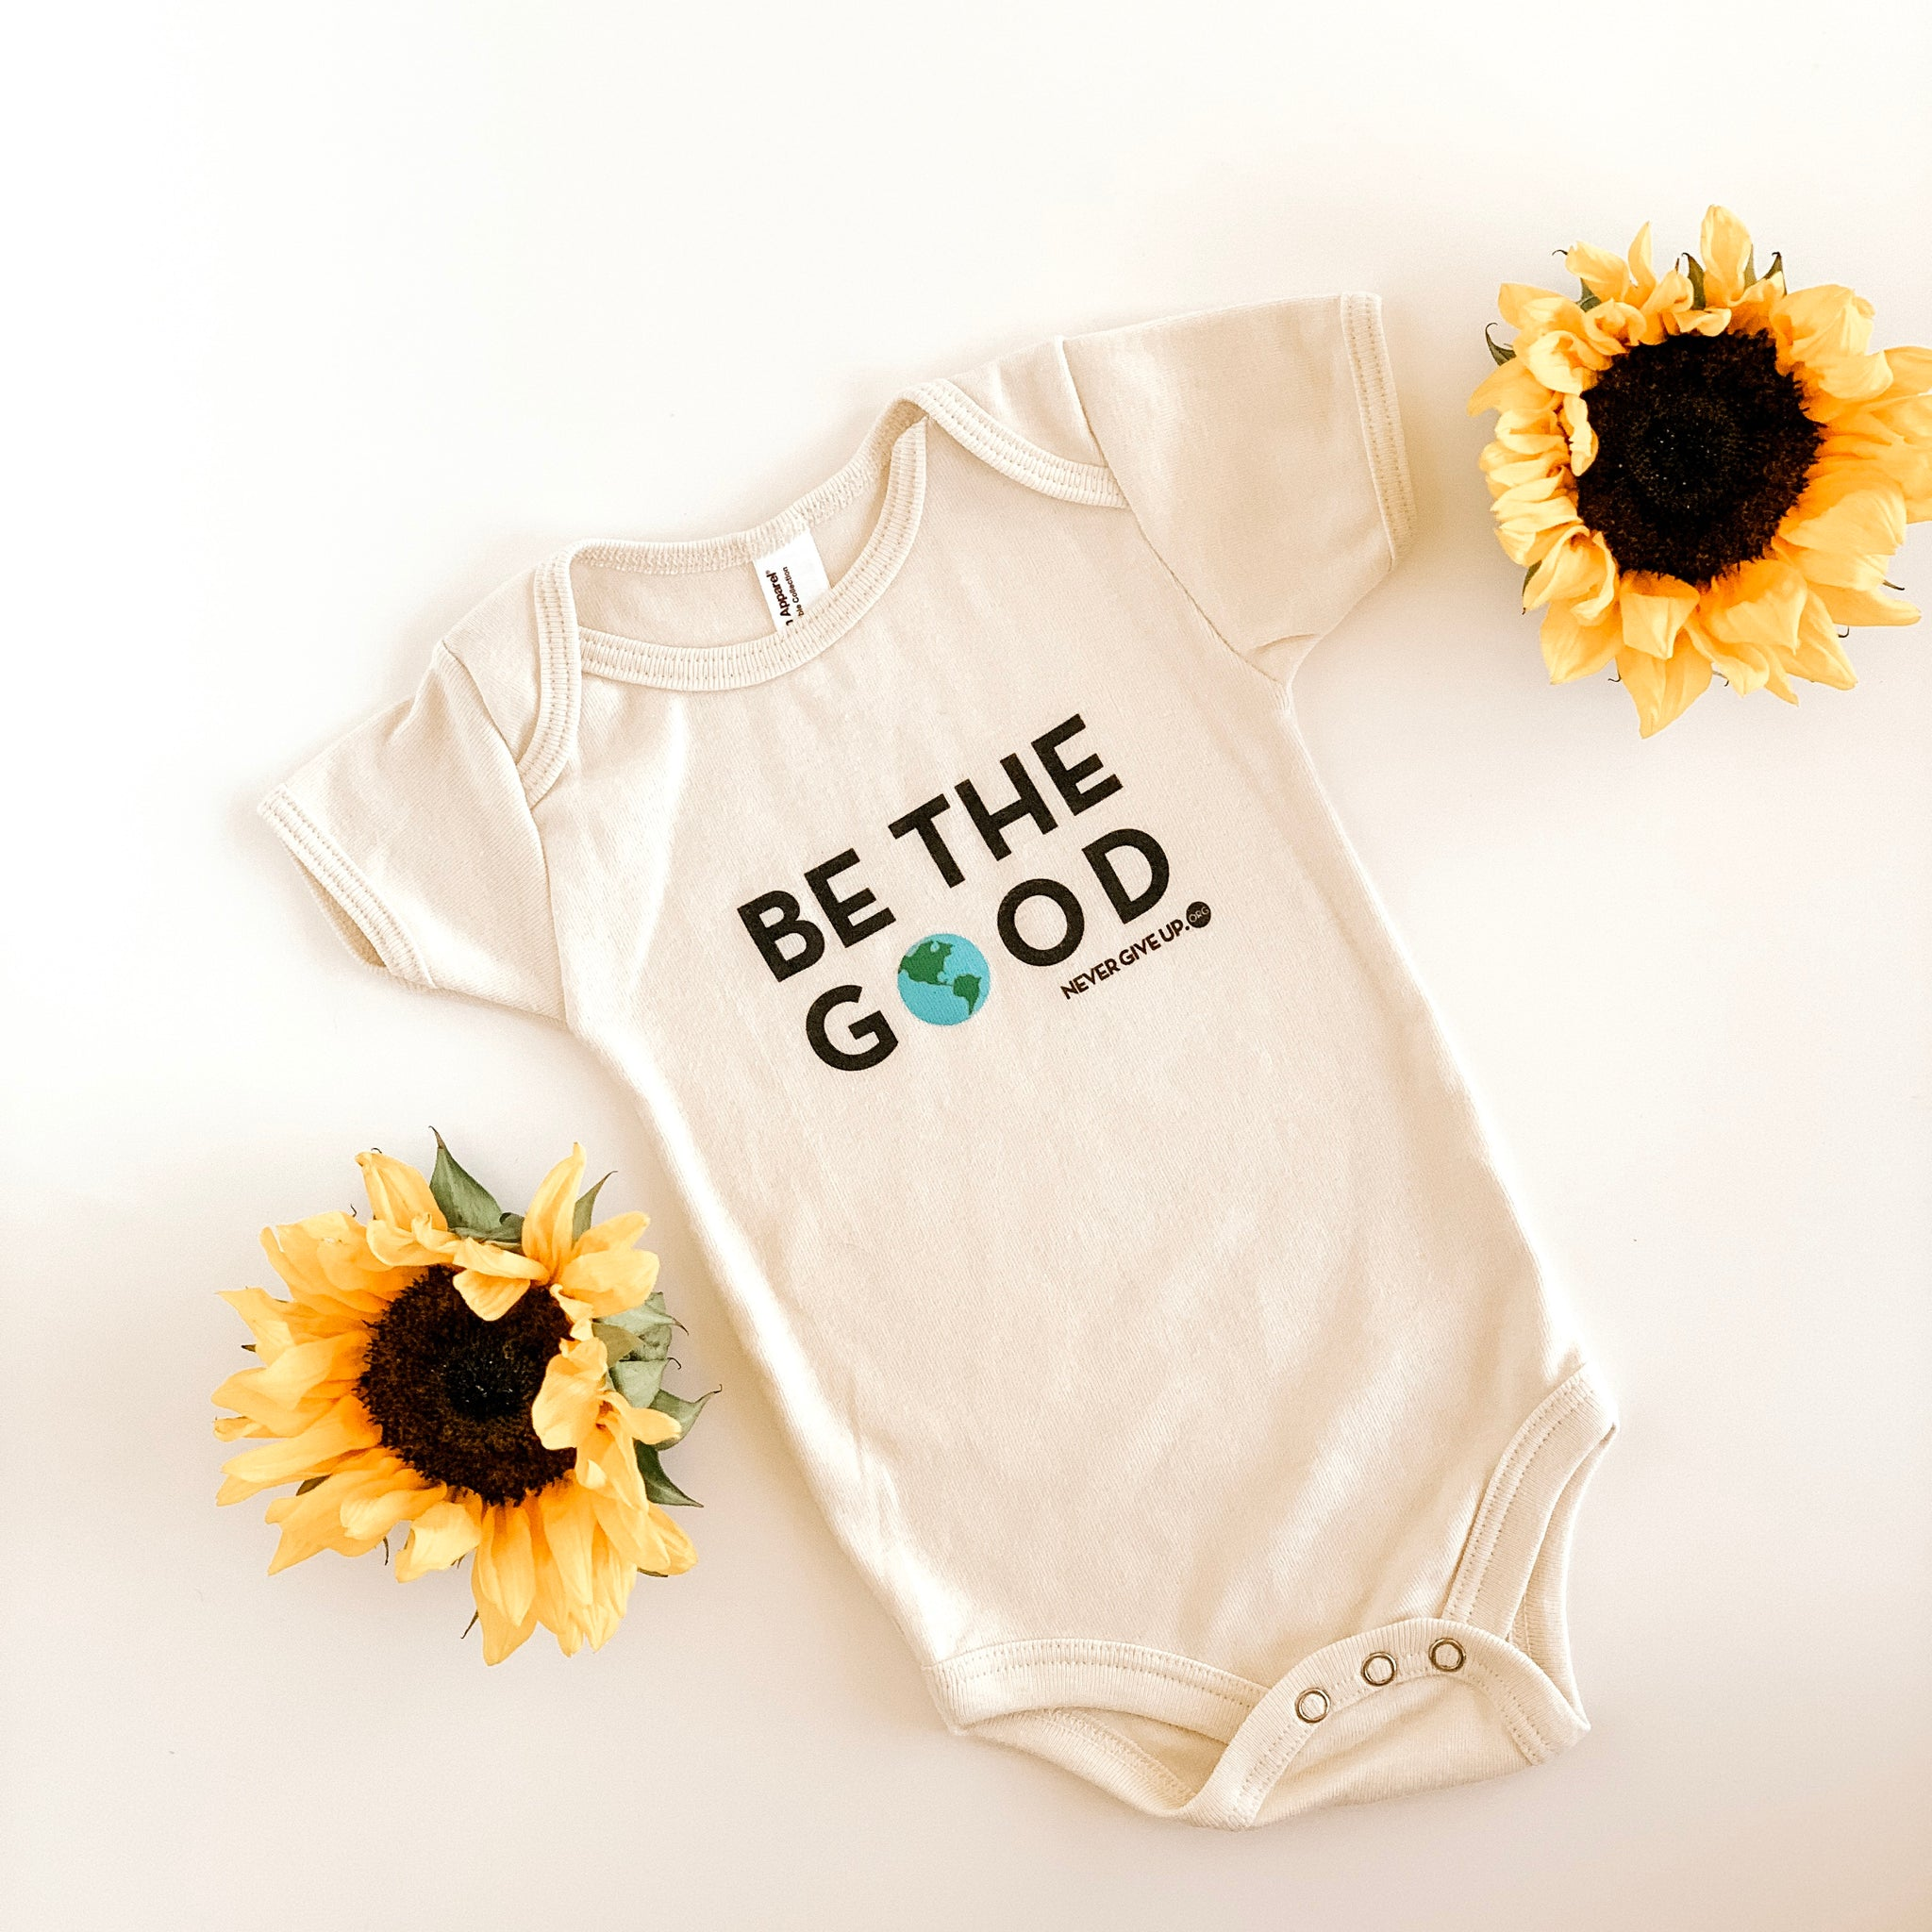 BE THE GOOD. BABY ONESIE